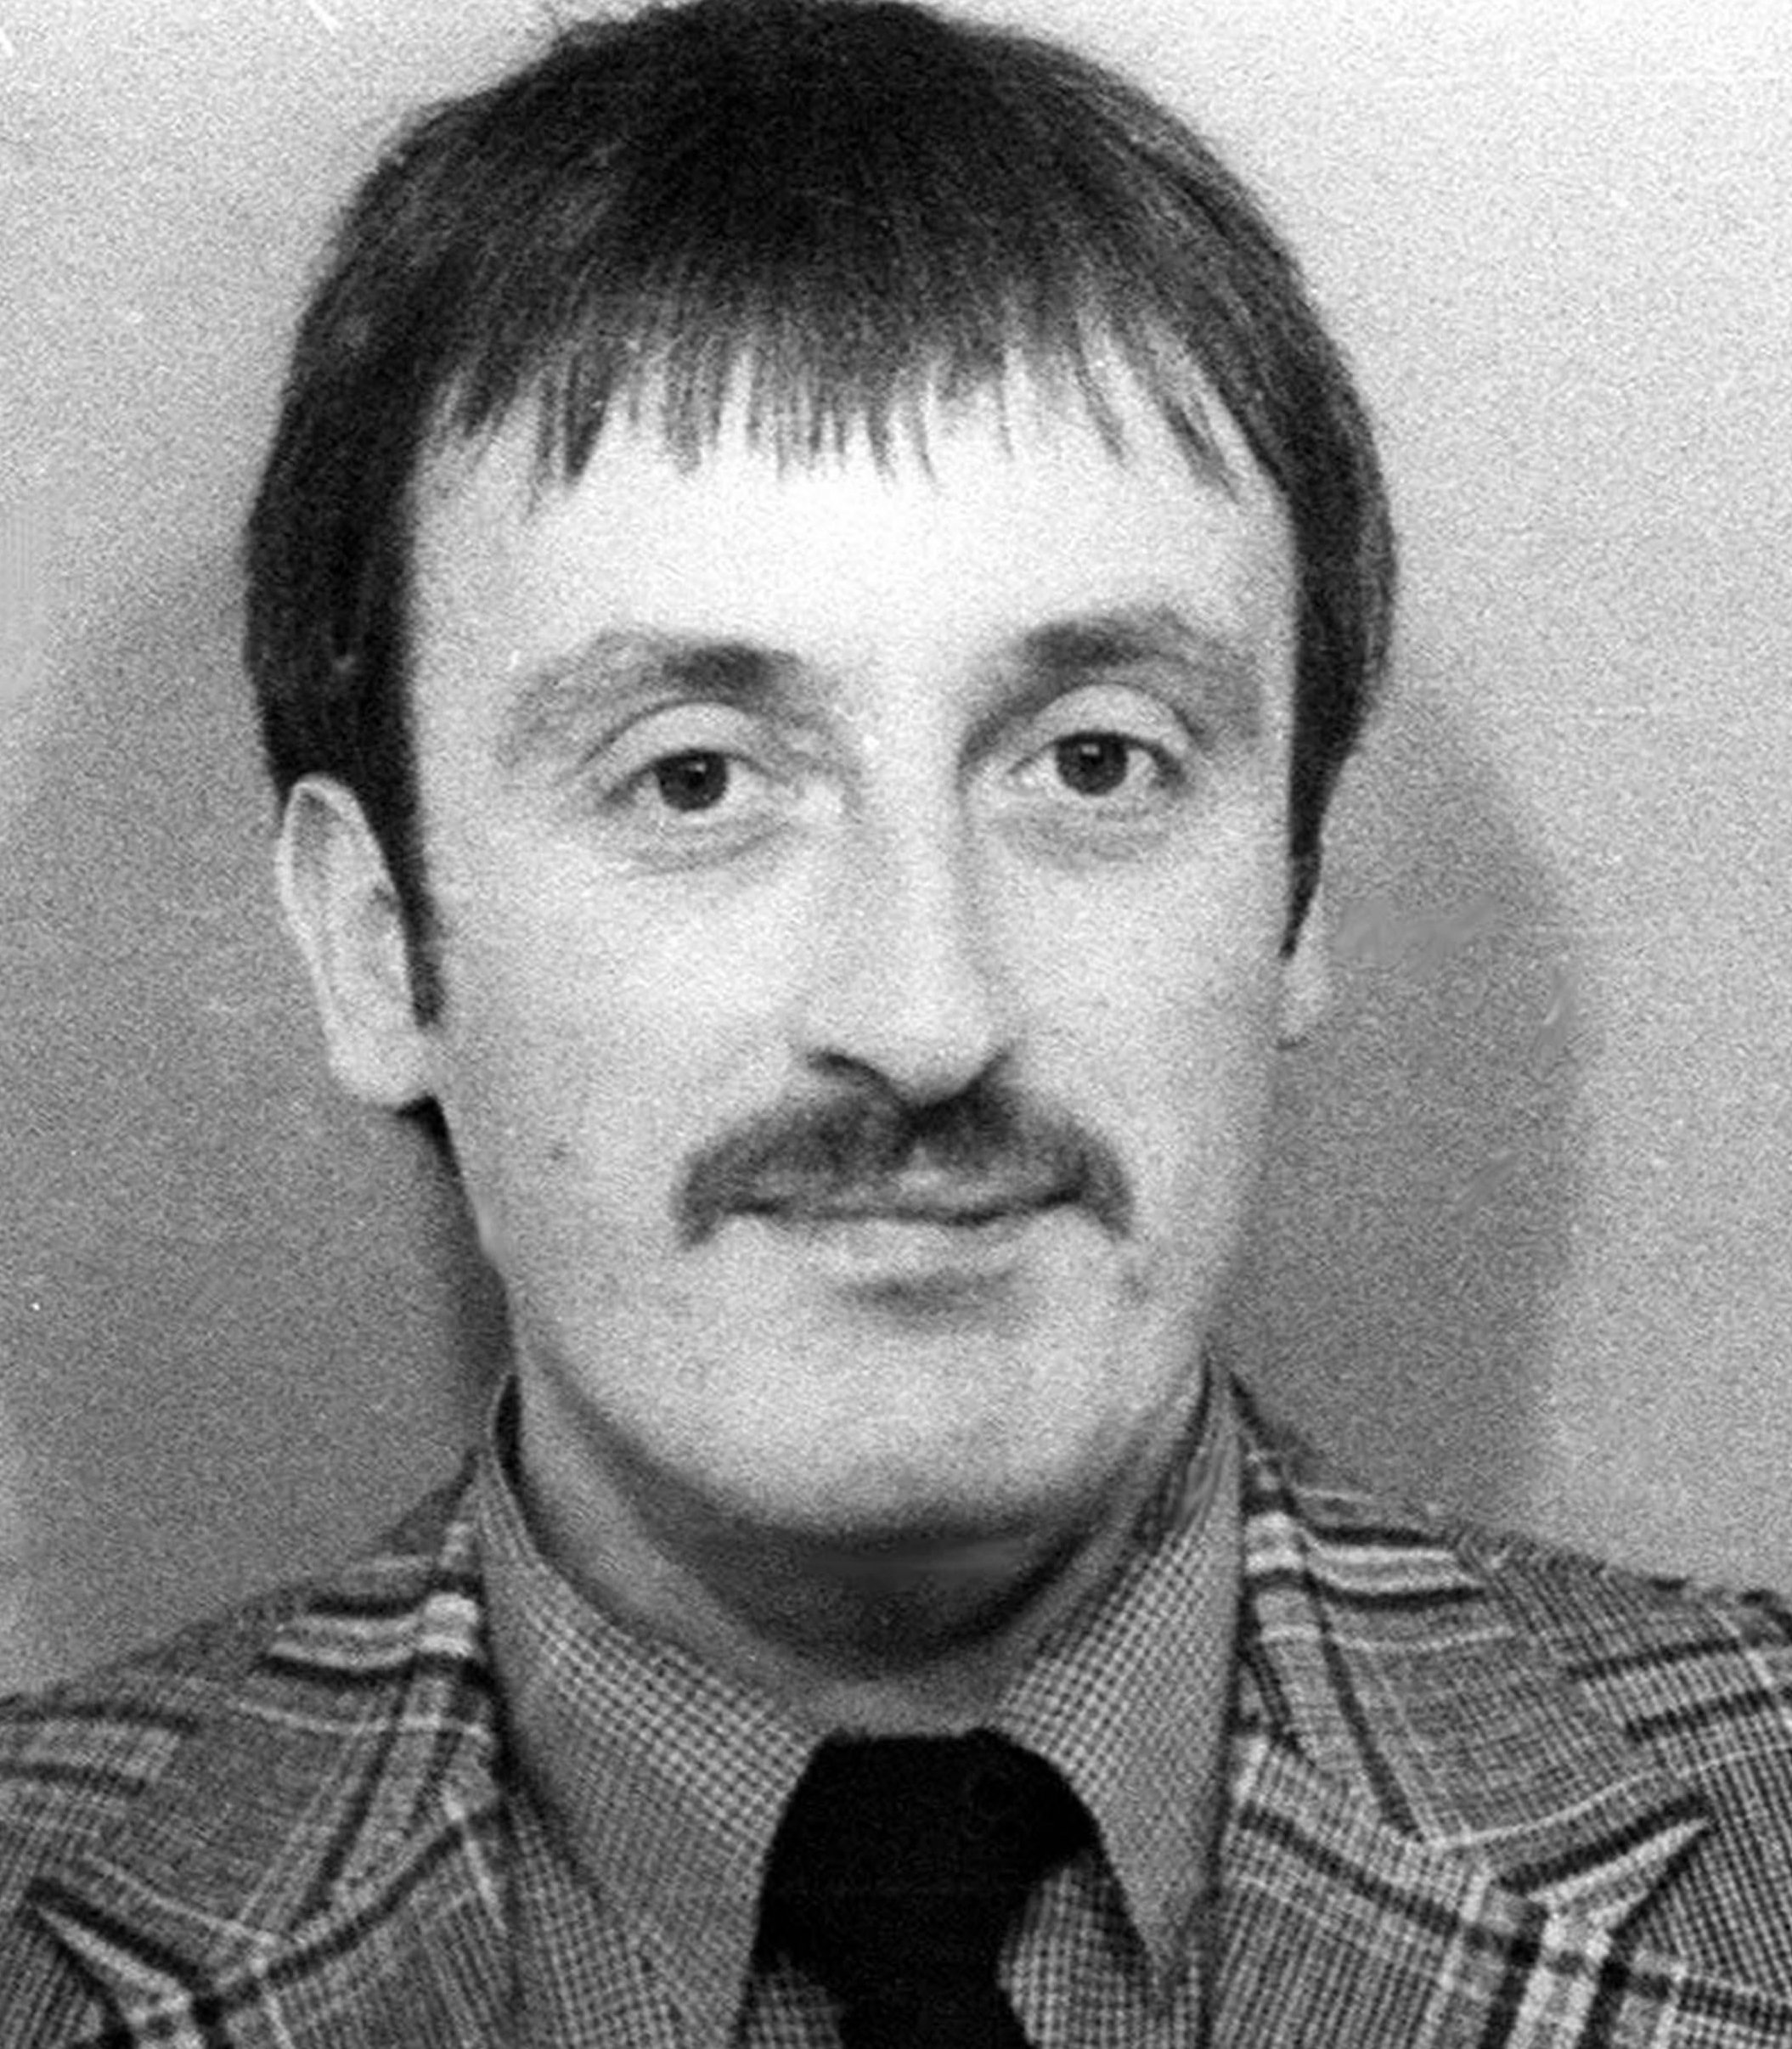 PC Kieth Blakelock was murdered during the 1985 Broadwater Farm riots